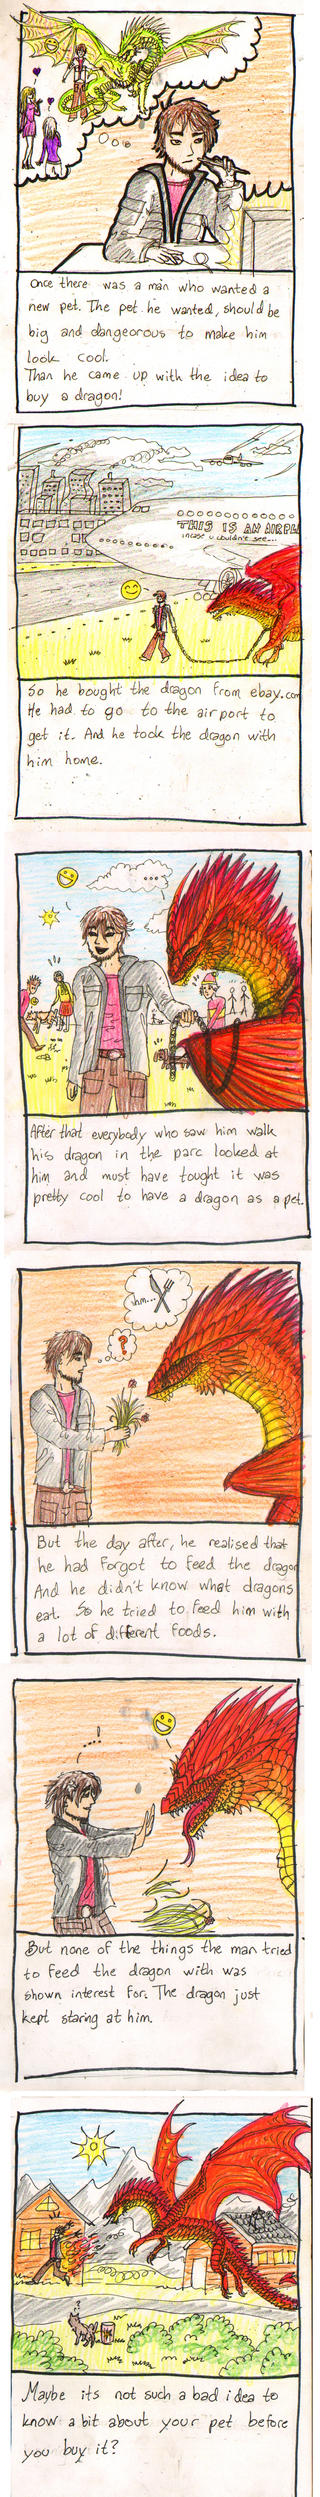 How to feed your dragon by Sunima